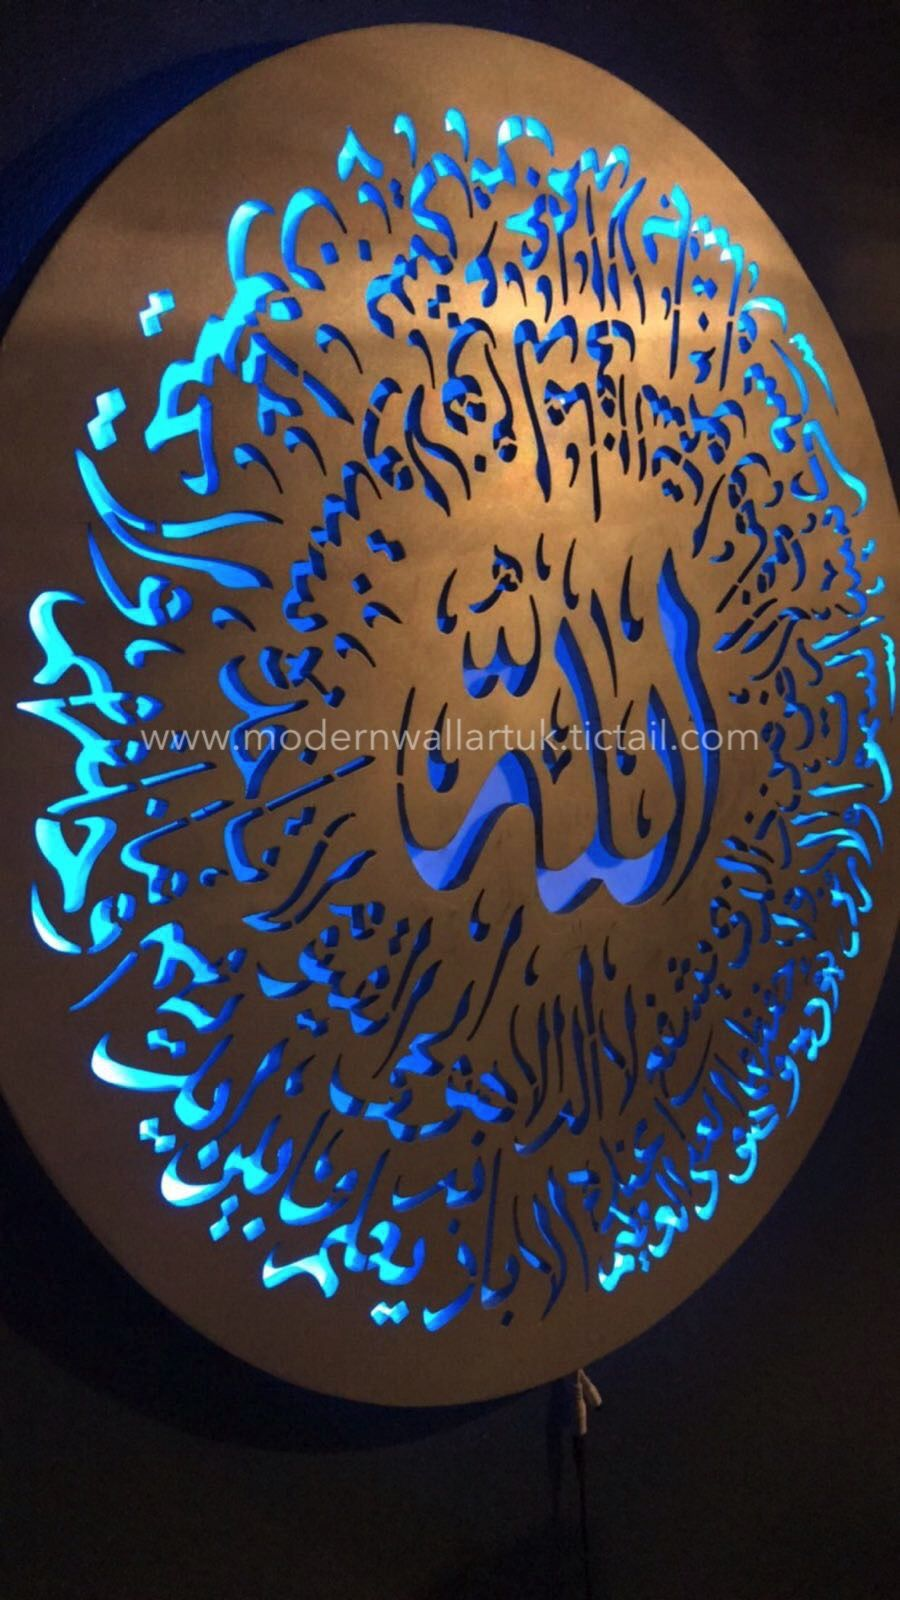 Led Ayatul Kursi Wall Art Designed In A Large Circular Wood That Beautifully Sits A Little Eleva Islamskaya Kalligrafiya Nastennye Skulptury Islamskoe Iskusstvo